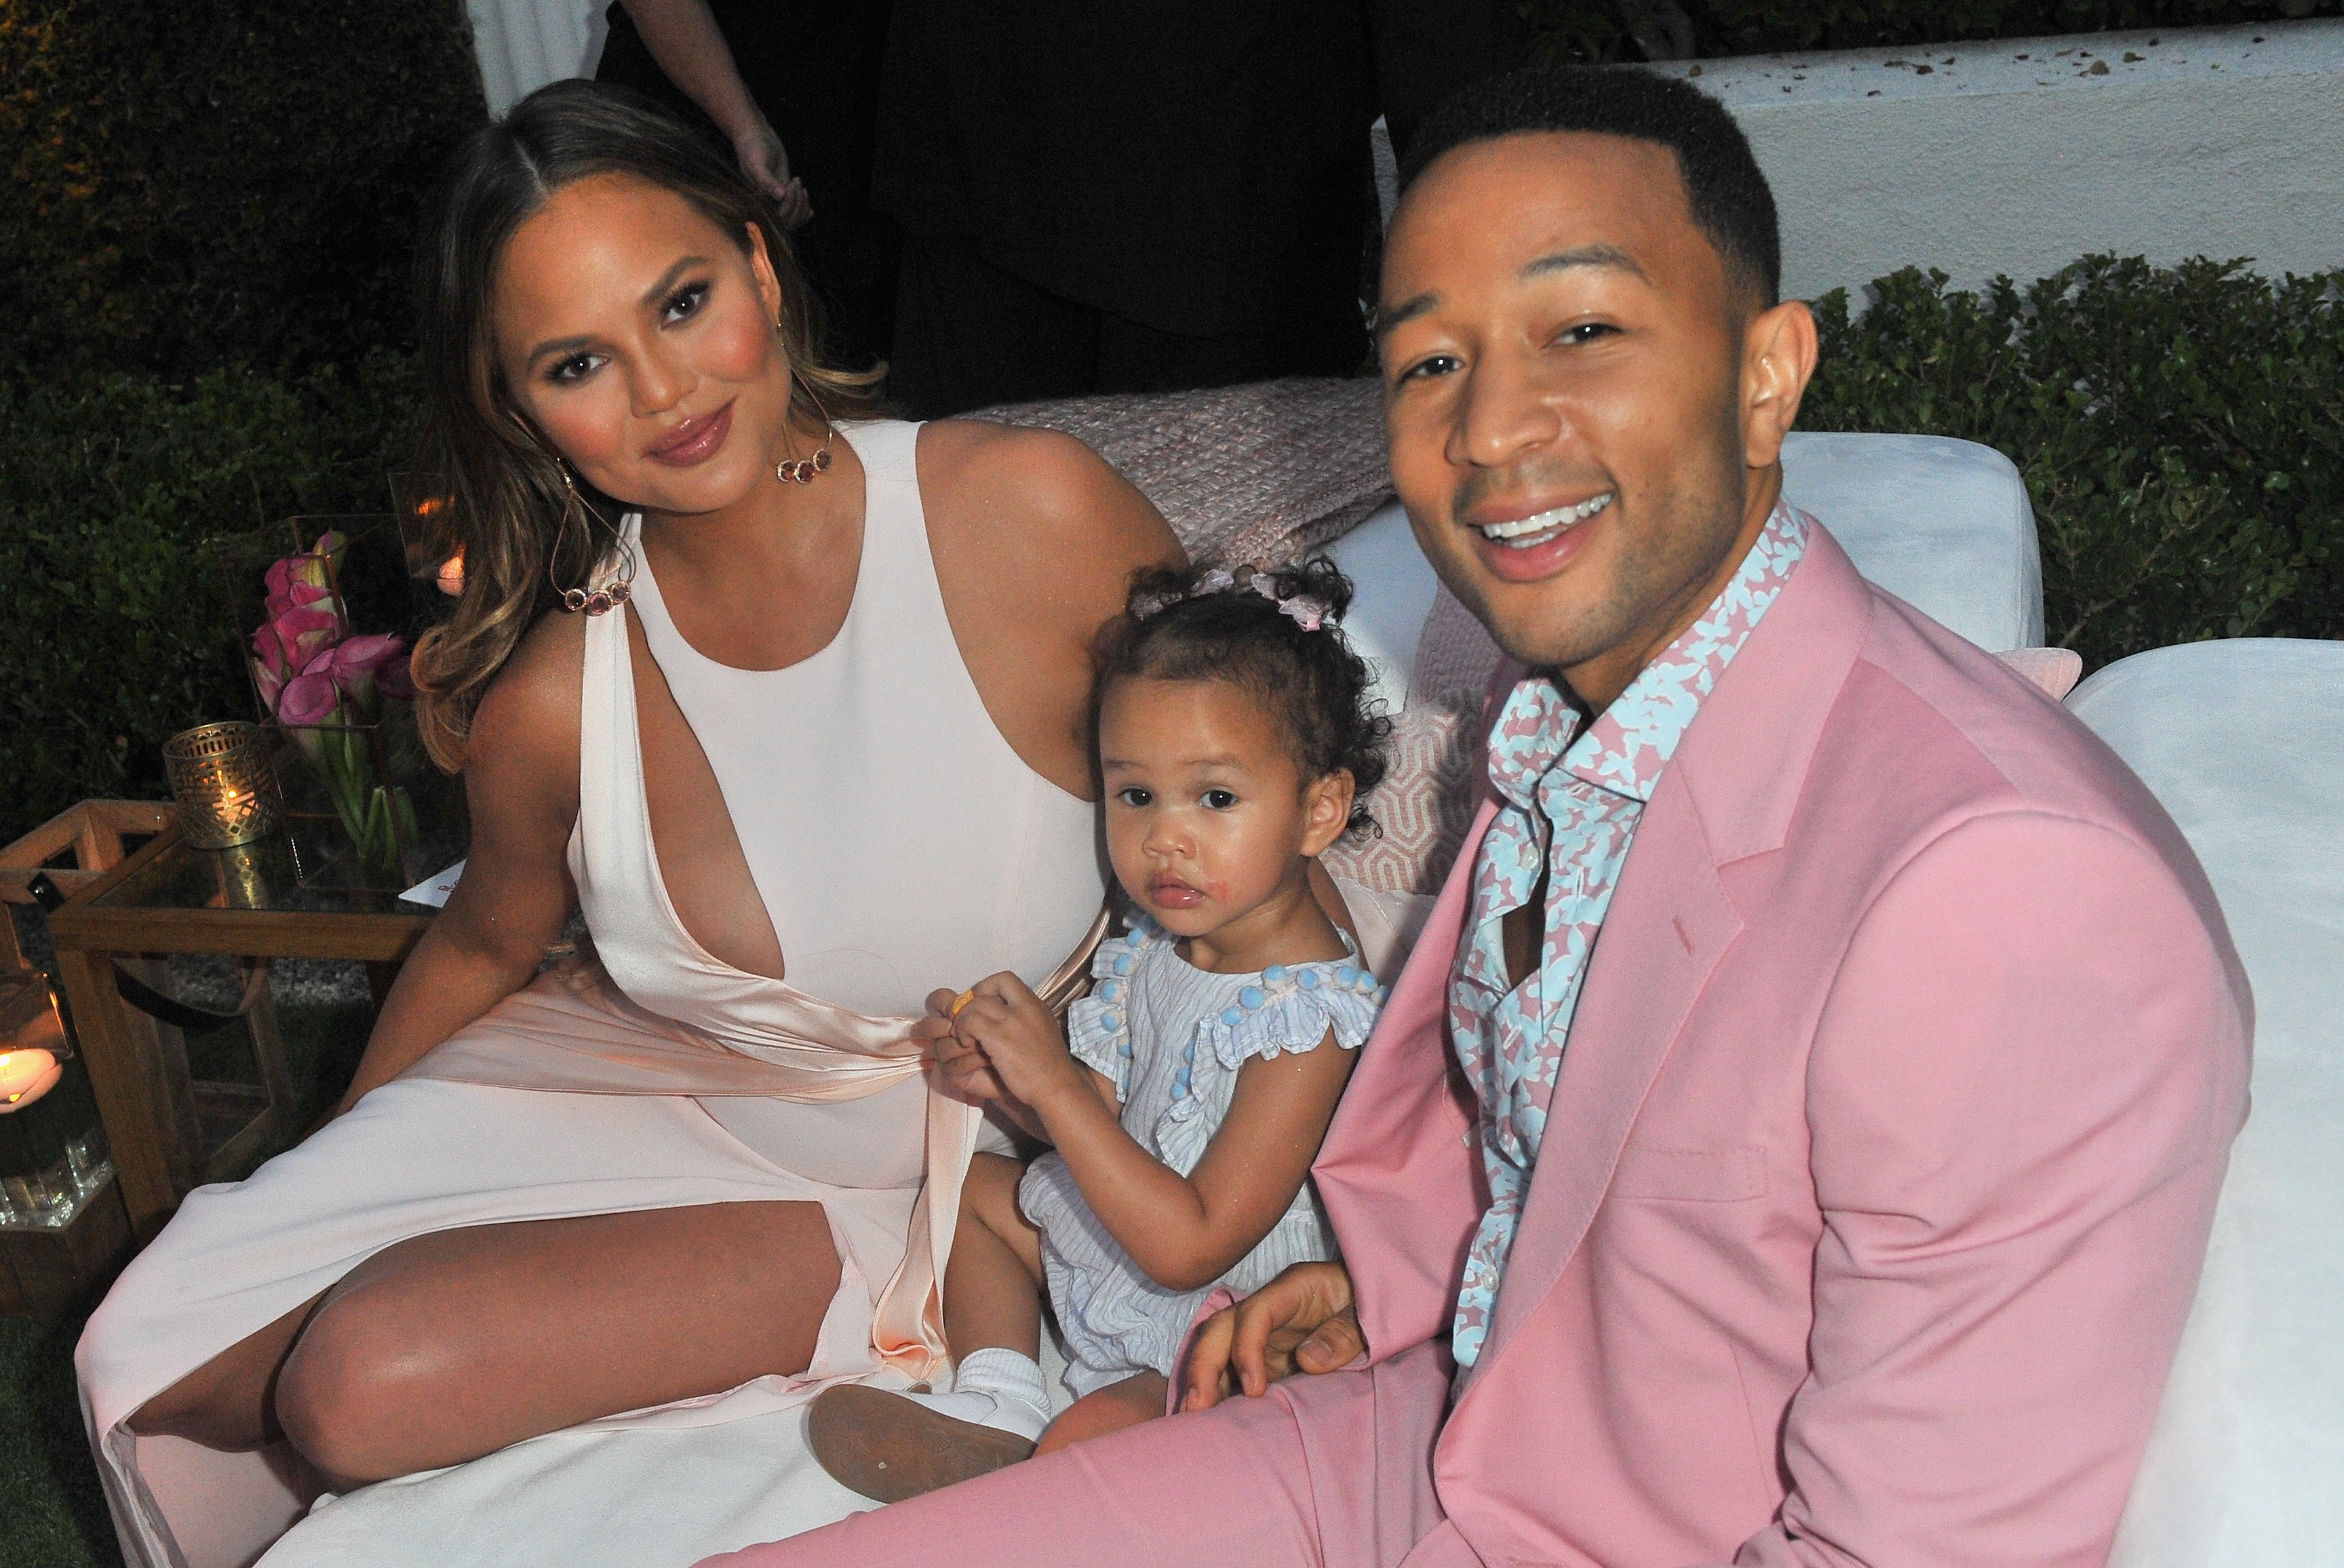 Chrissy Teigen, Luna Simone Stephens and John Legend attend John Legend's launch of his new rose wine brand, LVE, during an intimate Airbnb Concert on June 21, 2018 in Beverly Hills, California | Photo: GettyImages